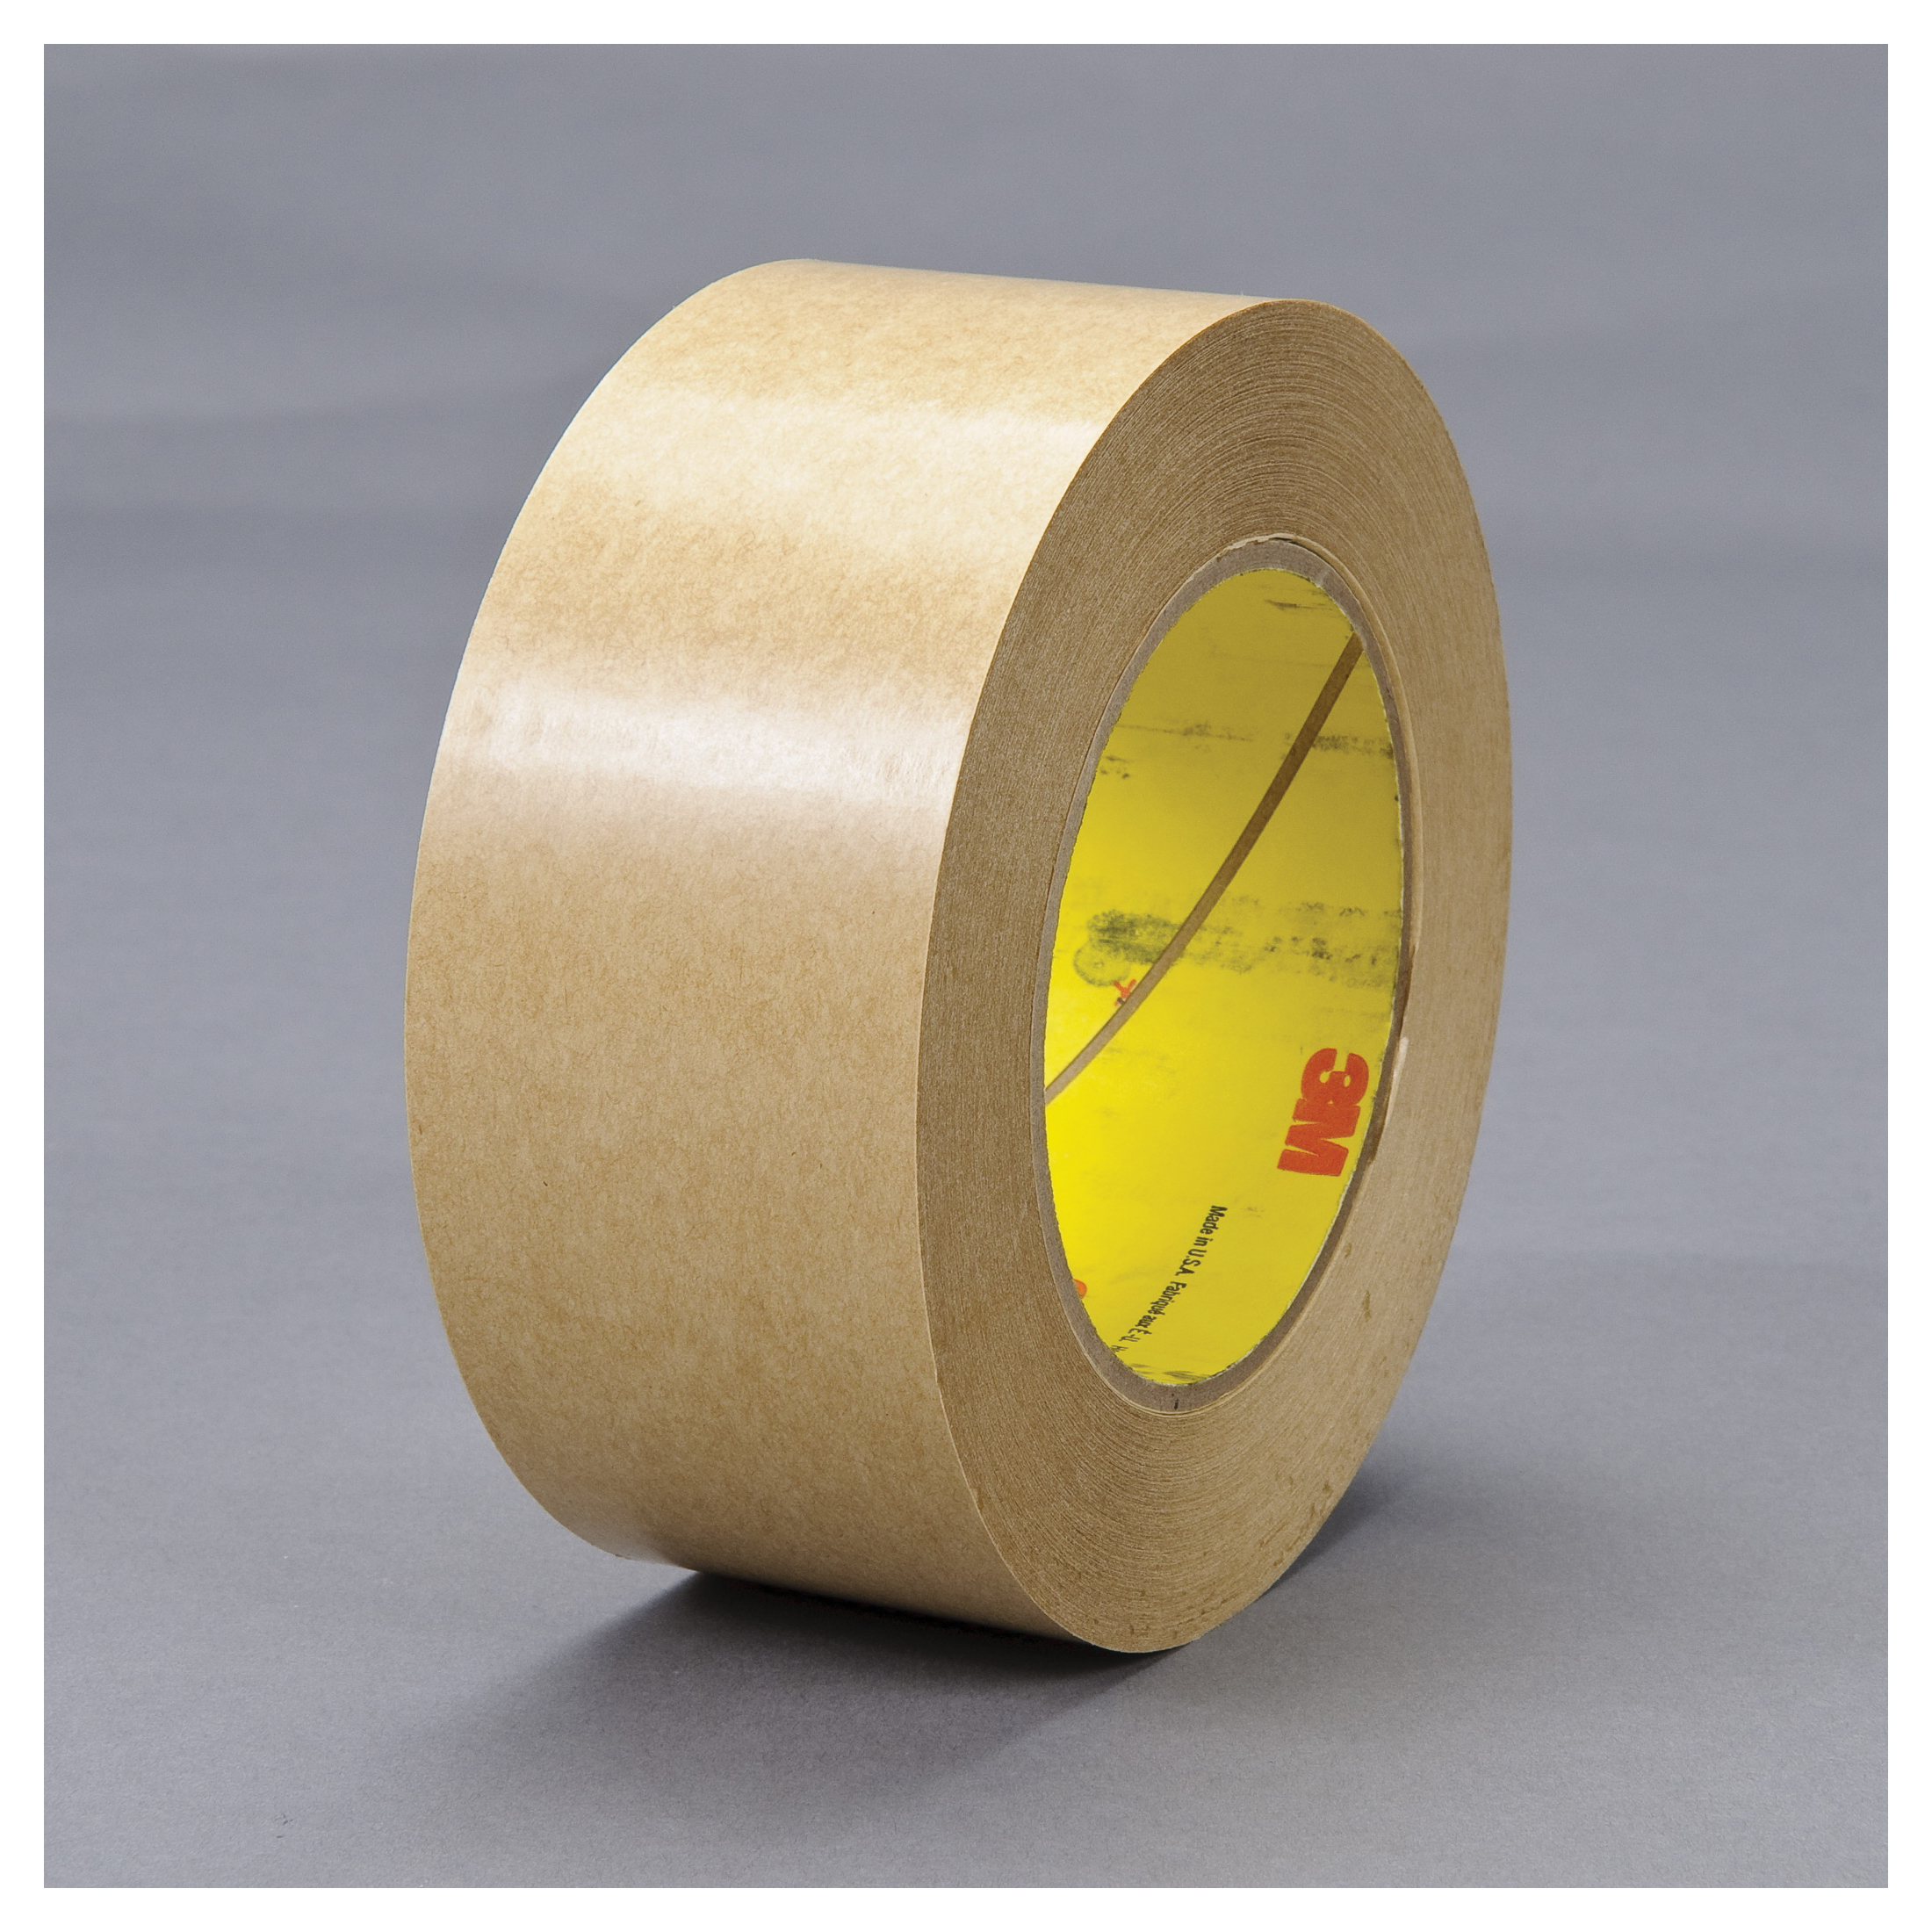 3M™ 021200-03353 Fibered General Purpose Adhesive Transfer Tape, 60 yd L x 36 in W, 2 mil THK, 2 mil 400 Acrylic Adhesive, Clear